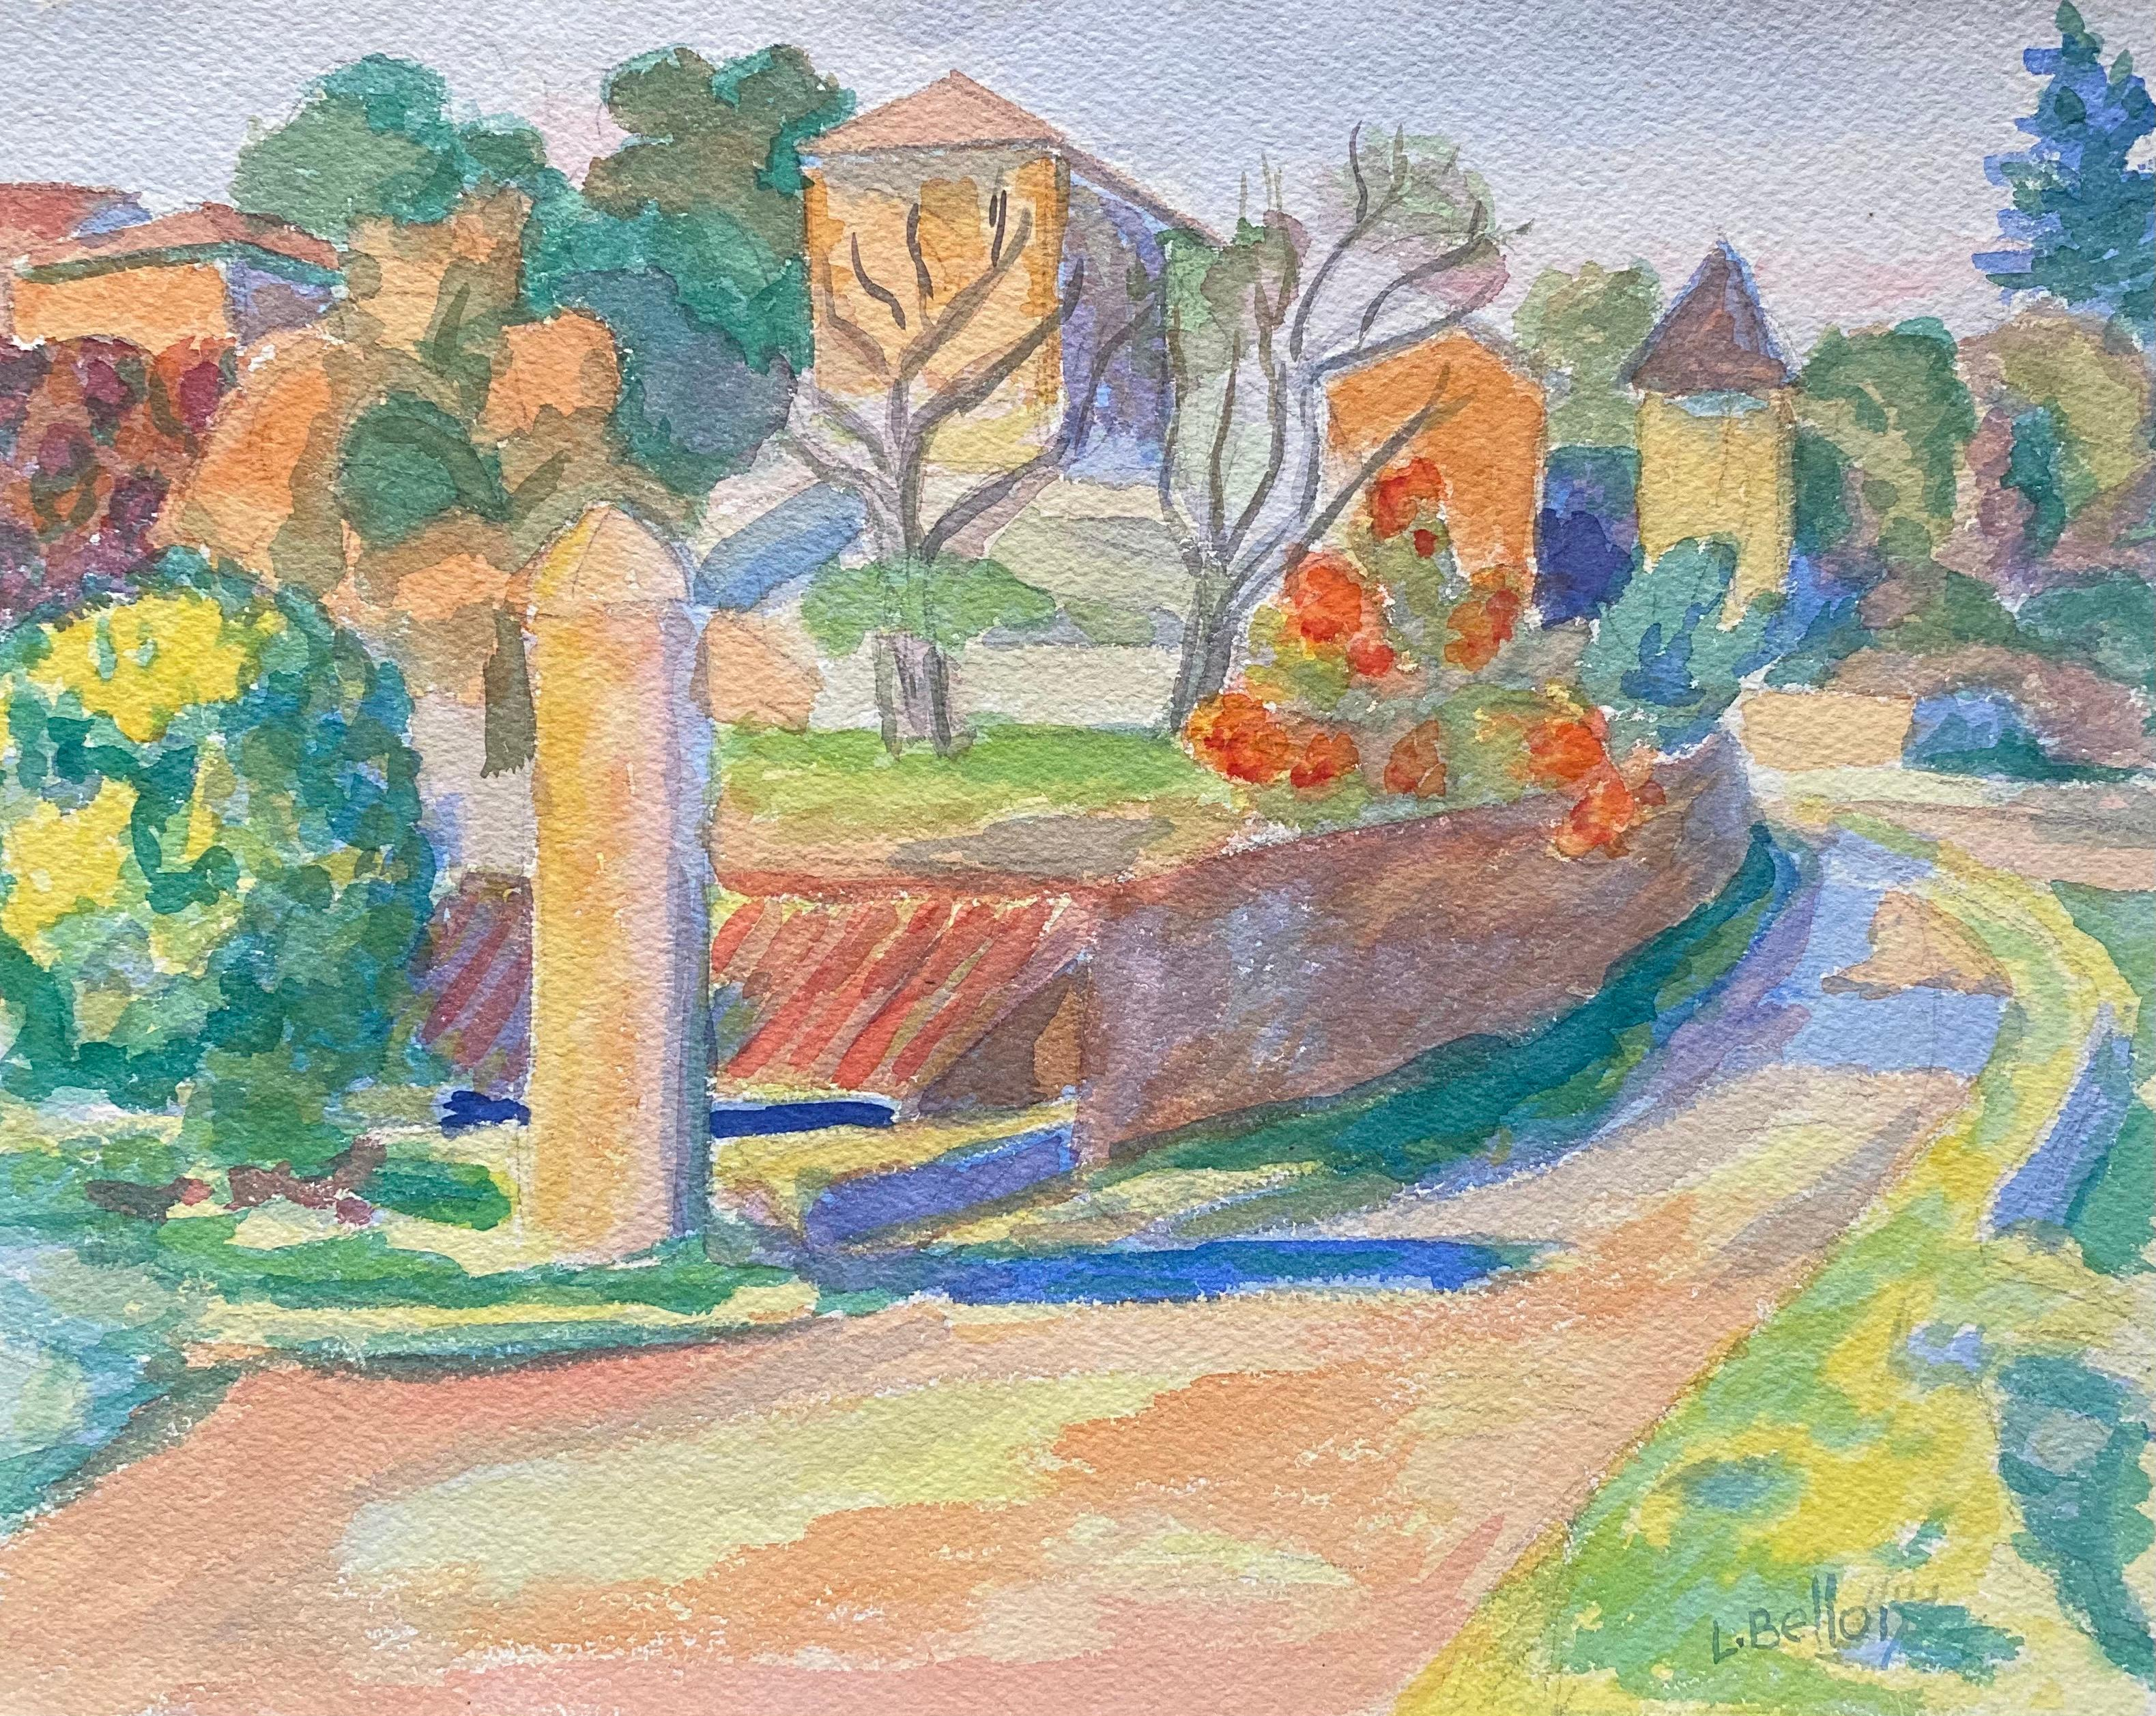 1940's Provence Painting French Pathway Landscape  - Post Impressionist artist